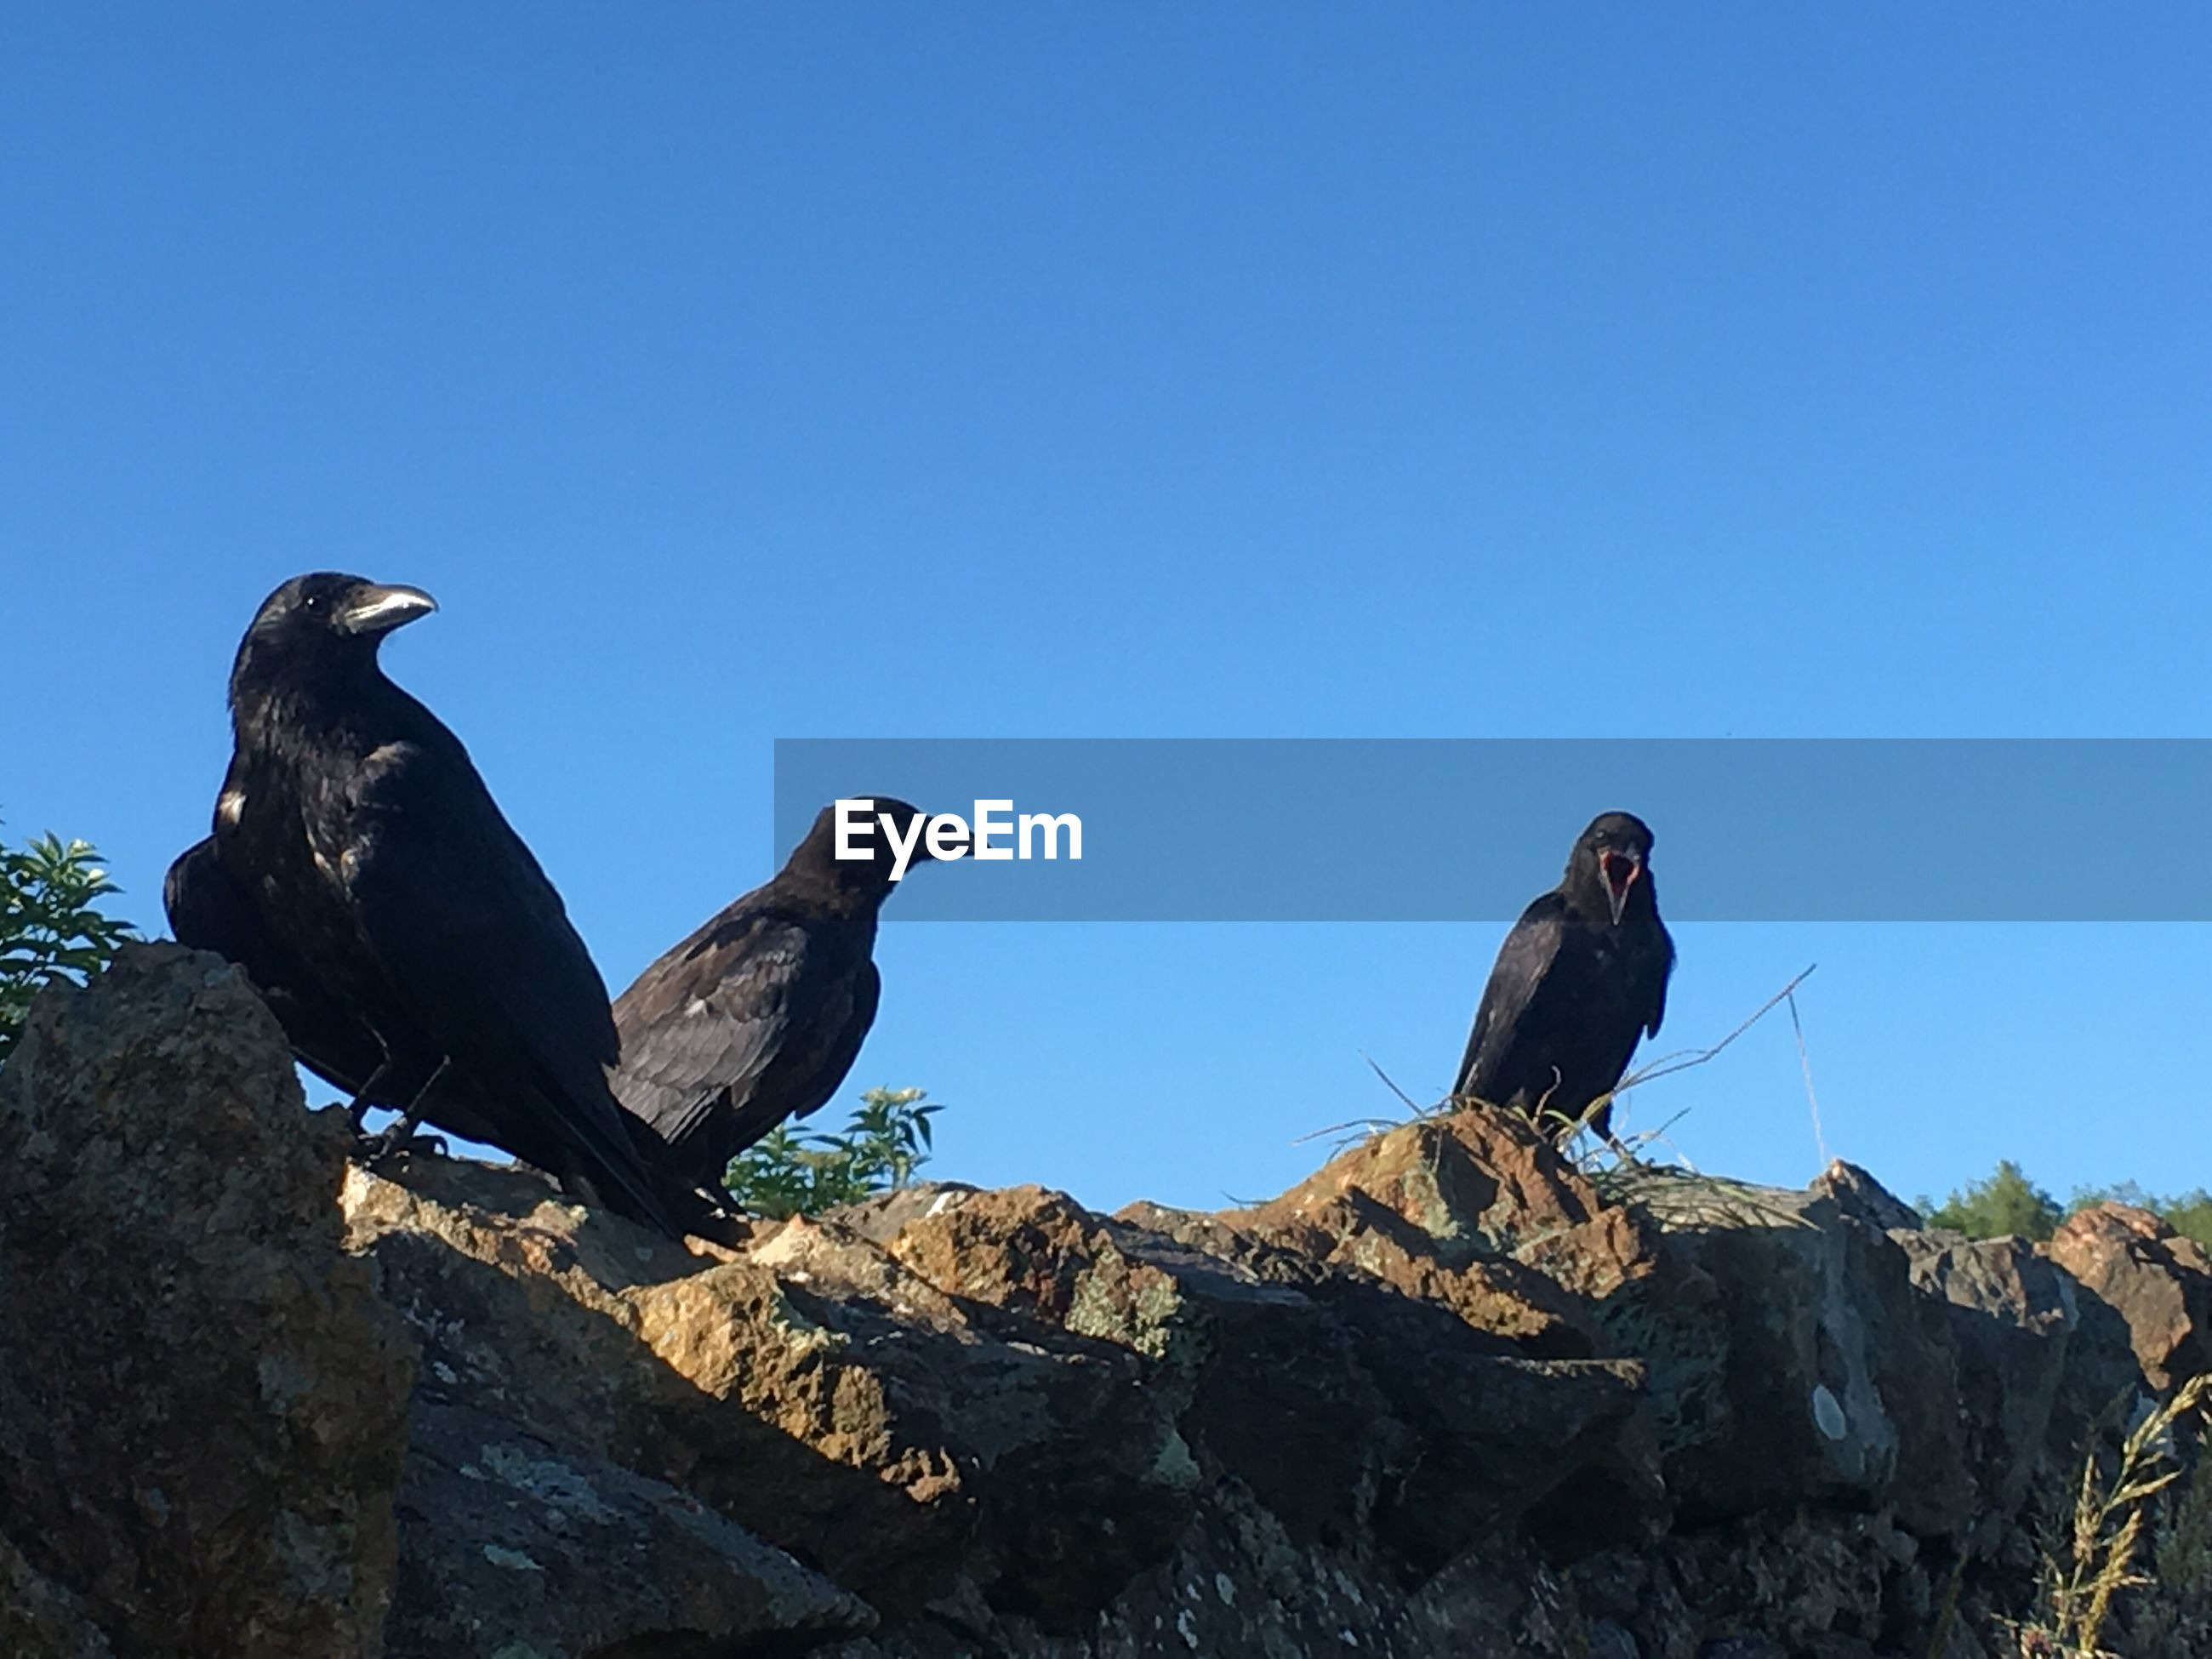 Crows perching on rock